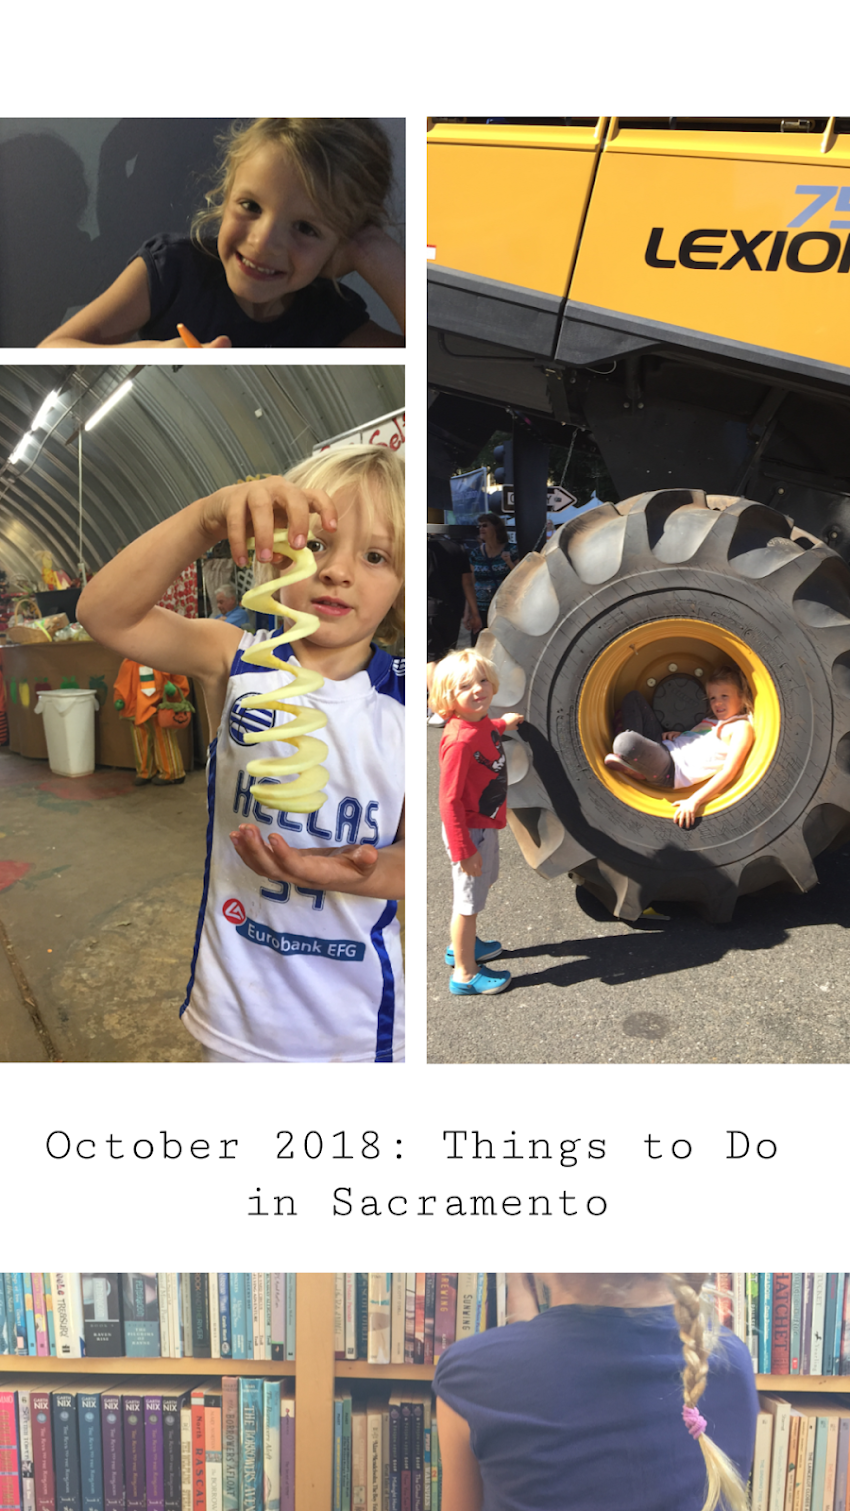 Things to Do: October 2018